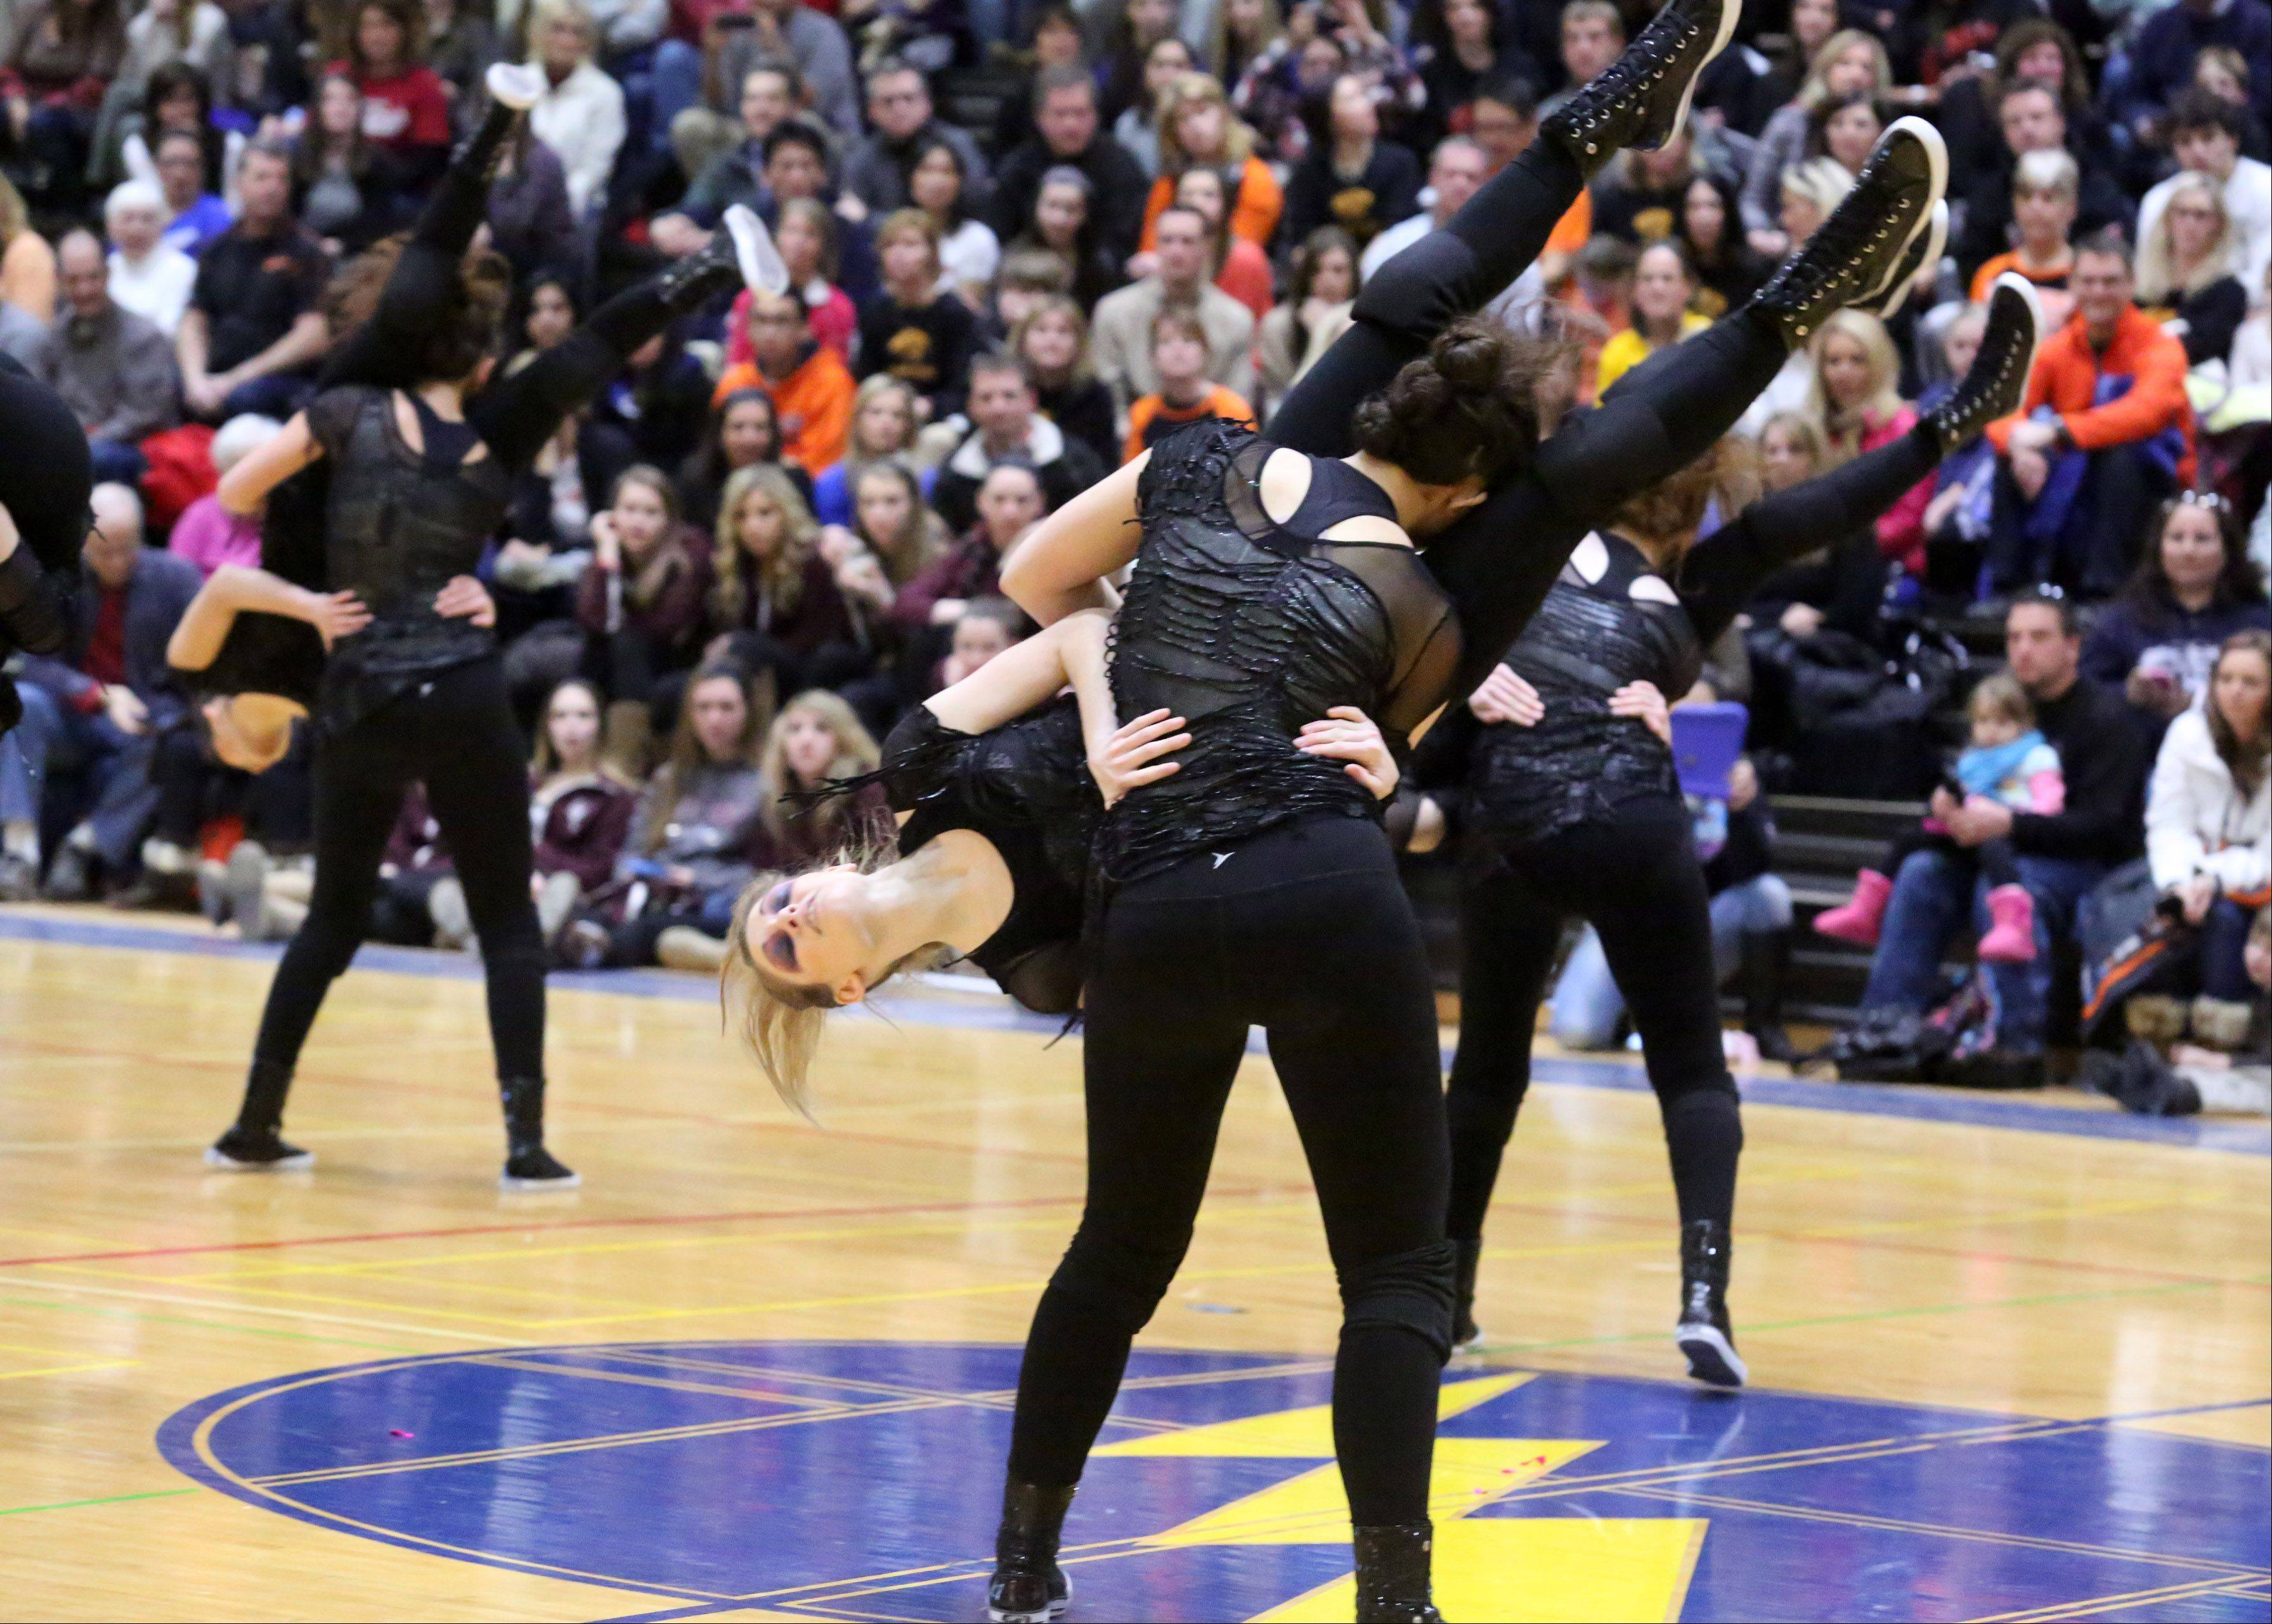 Fenton High School's dance team competes at the IHSA competitive dance sectional at Glenbrook South High School on Saturday in Glenview.